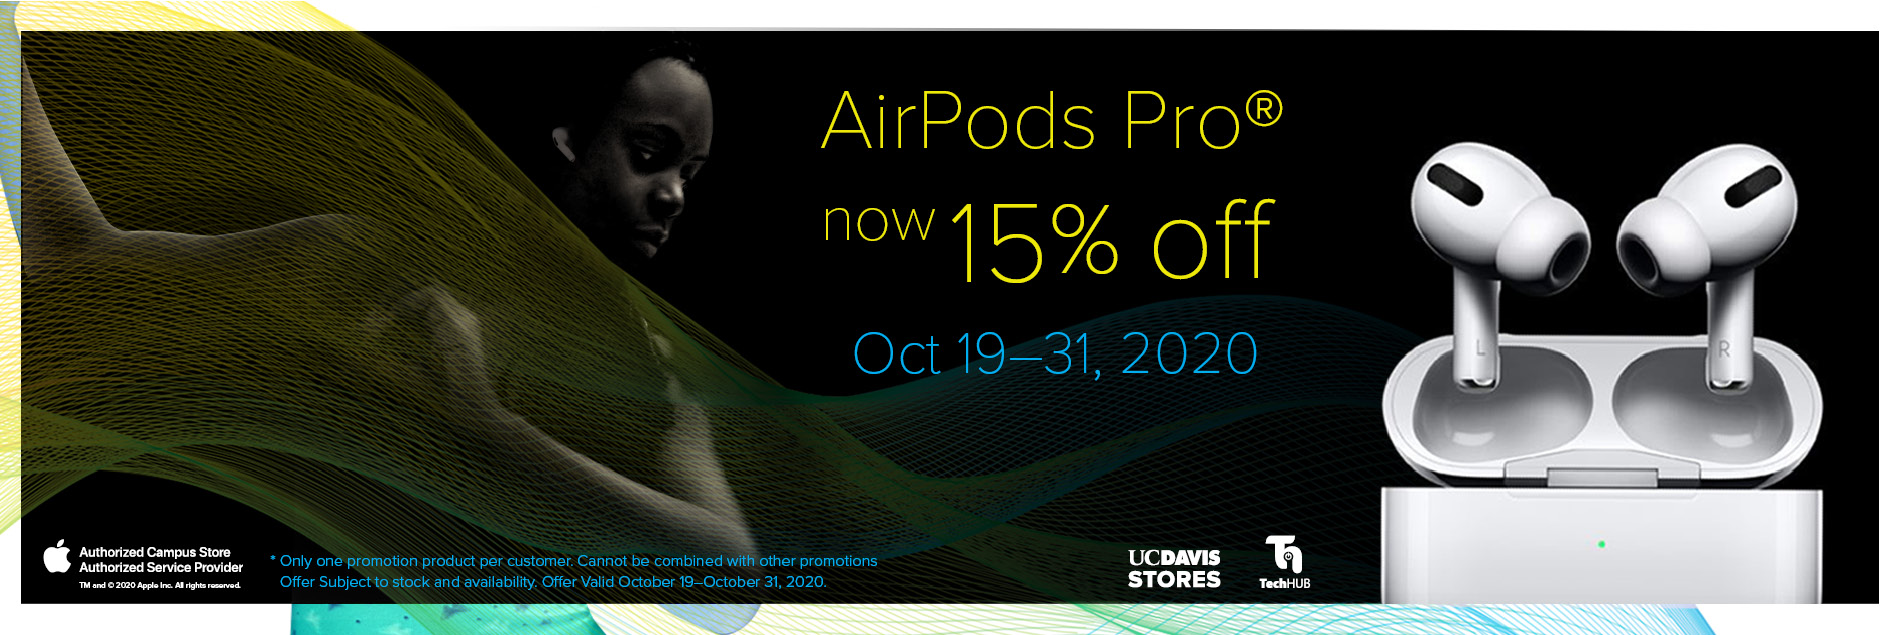 Airpods Promo Banner